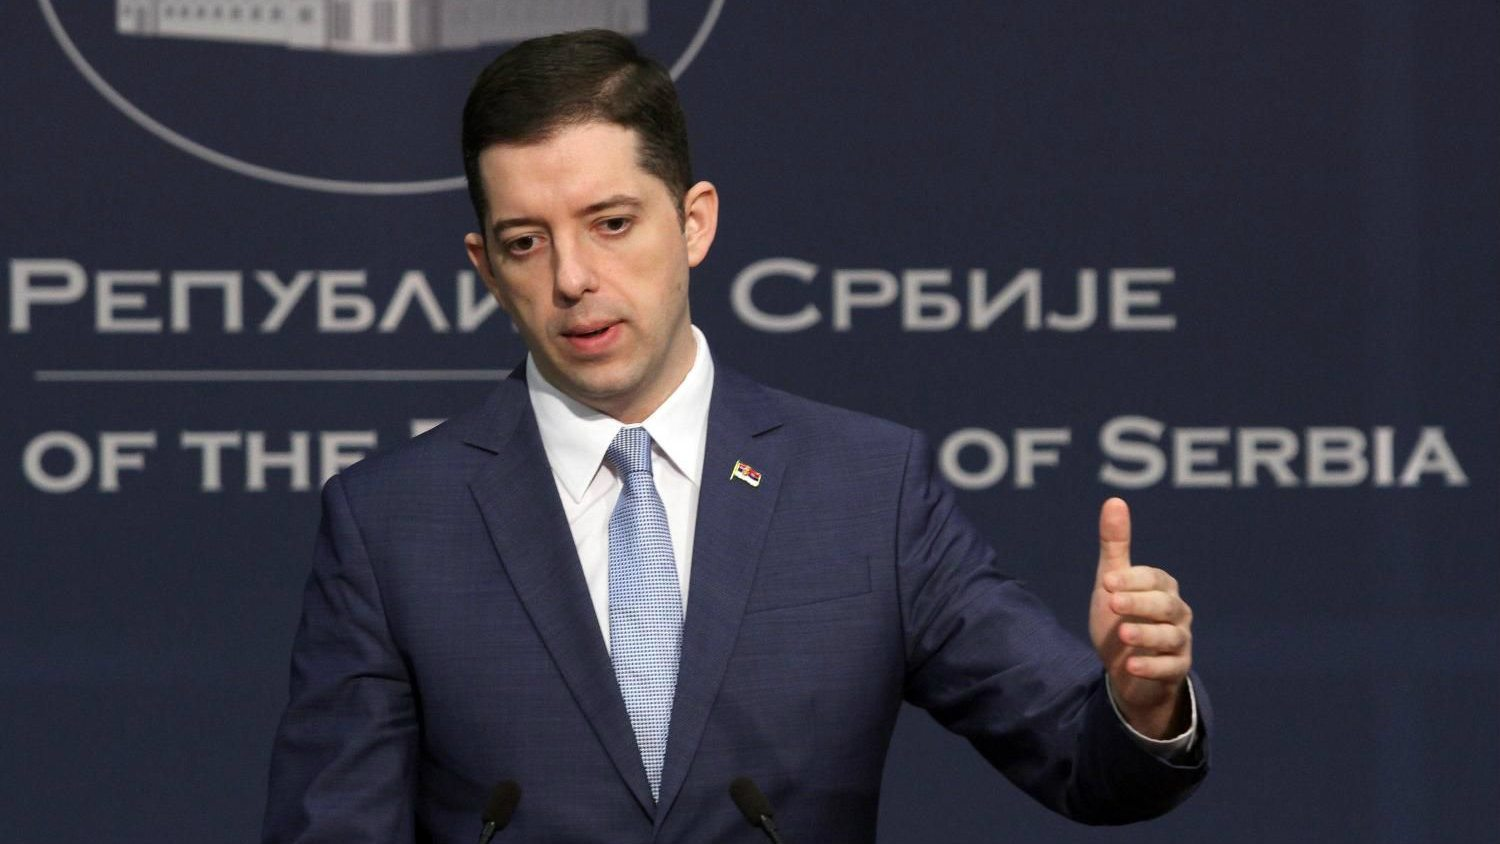 SerbianProgressives and Putin's party sign bilateral co-operation agreement